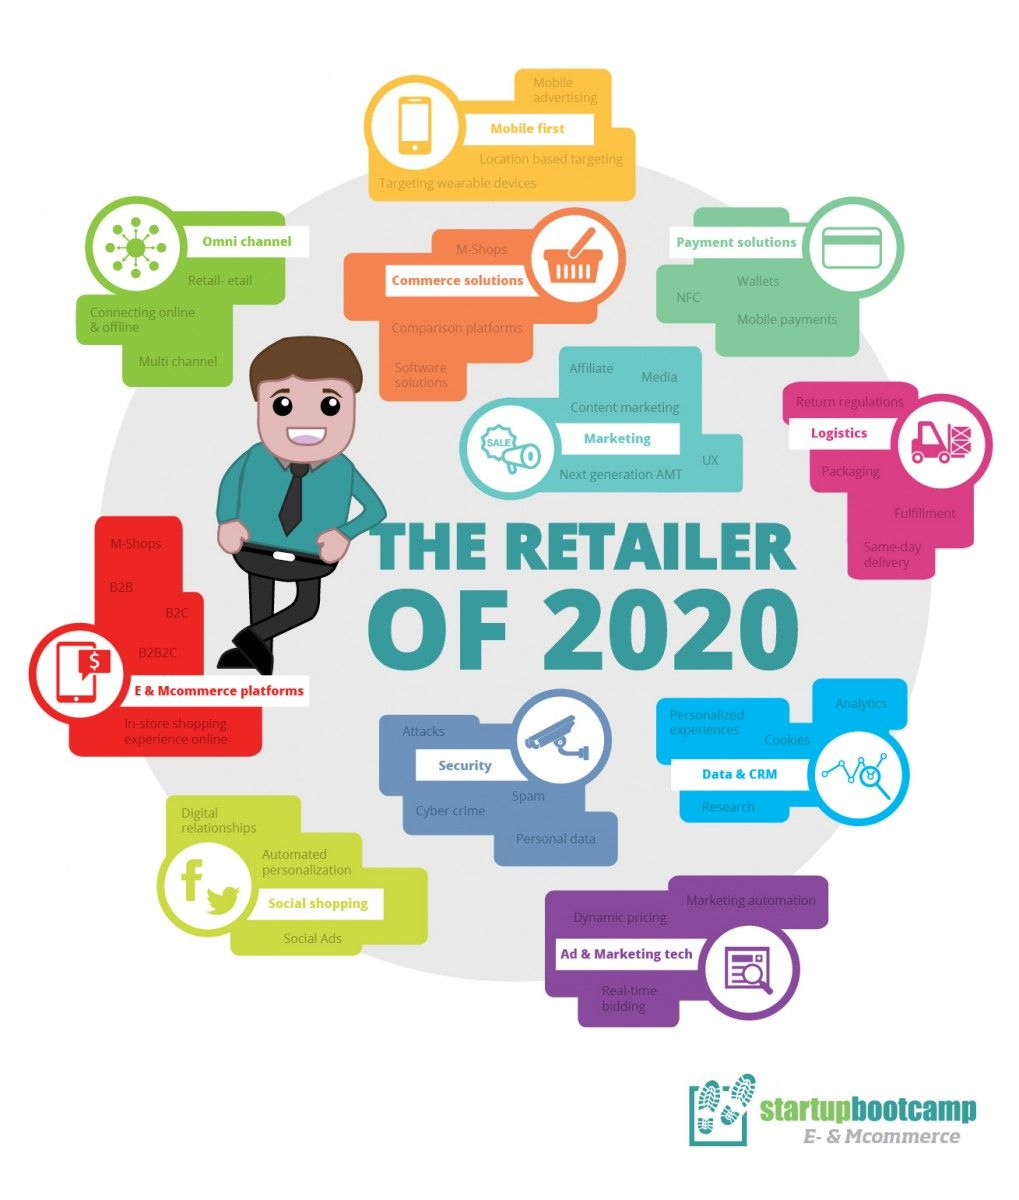 uk retail industry Retail trends and predictions 2017 12 forecasts for the retail industry in 2017 welcome to vend's 2017 retail trends and predictions report this year's forecasts will highlight the trends and issues (including personalization, in-store experiences, and developments in payments technology) that we think will have major impacts on the retail industry over the coming 12 months.